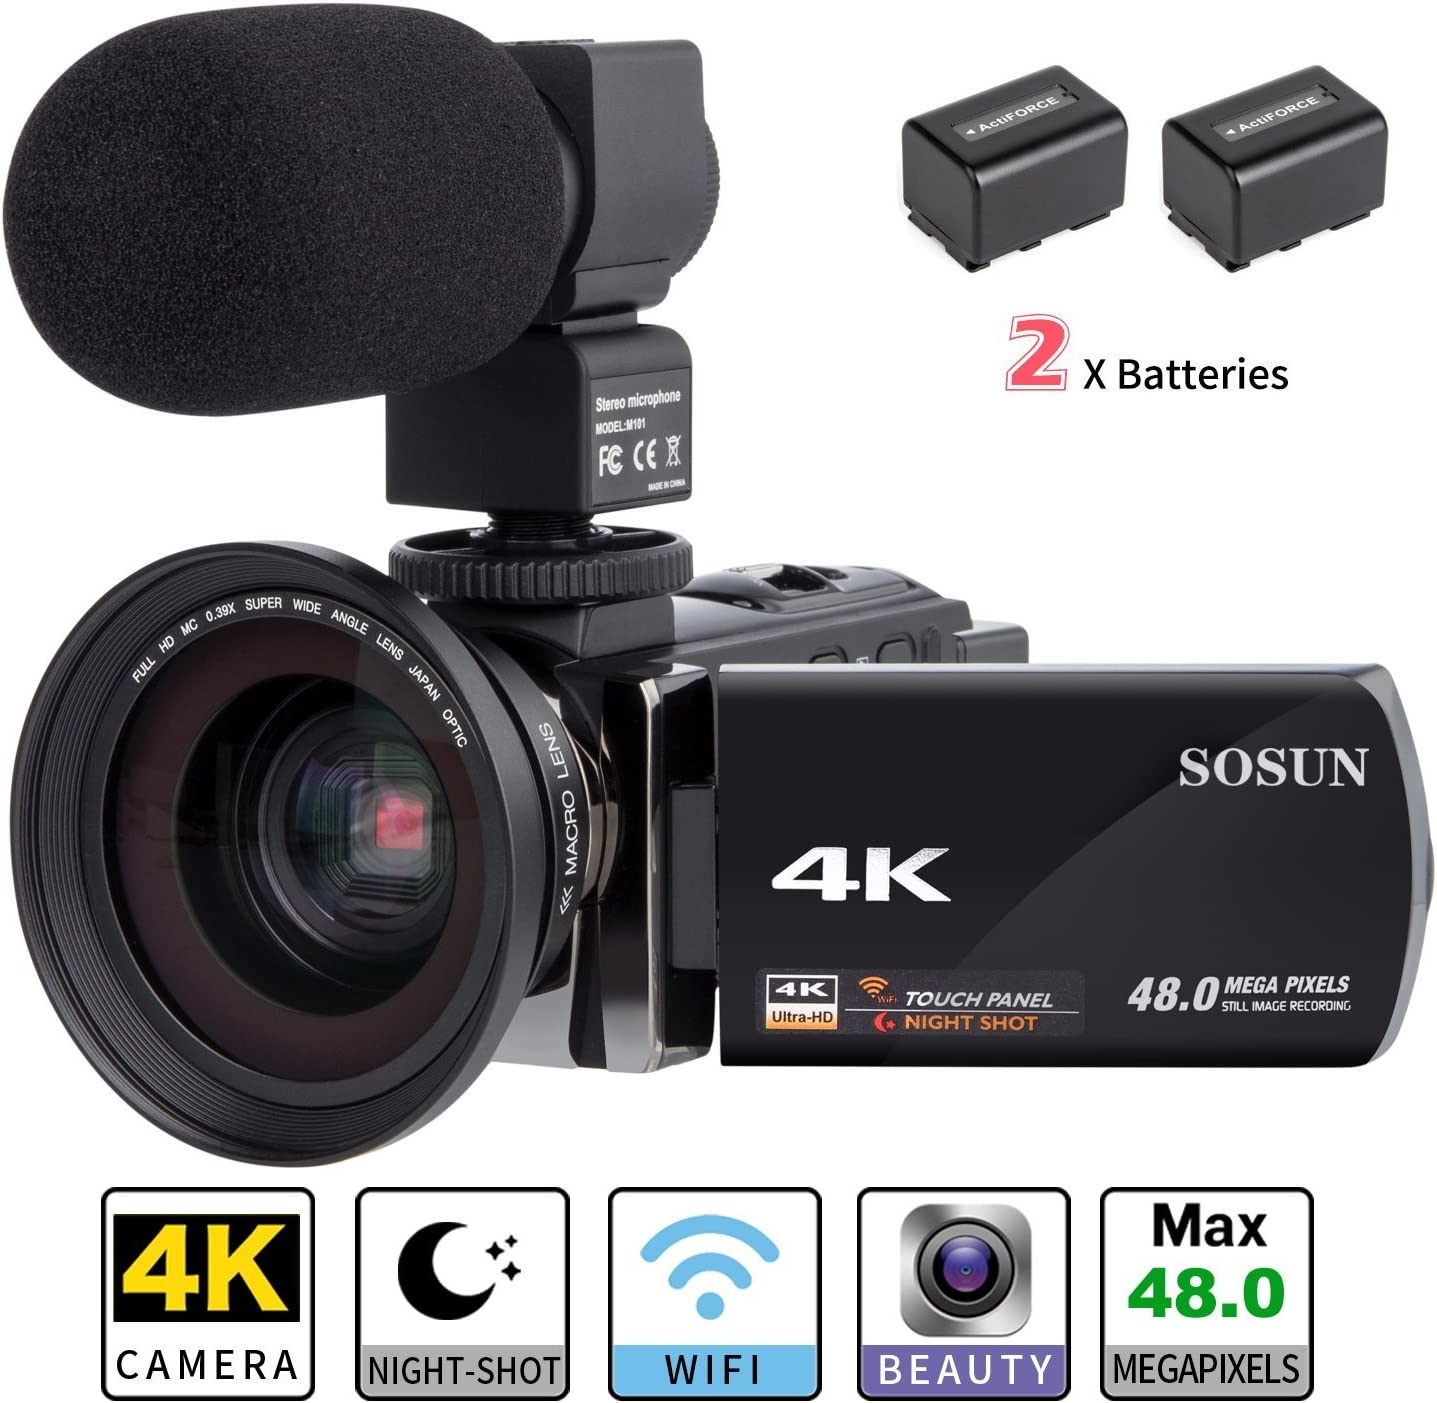 Amazon Com Camcorder Video Camera 4k Sosun 16x Digital Zoom Recorder Wifi Camera 48 0mp 3 0 Inch Touch Screen Night Vision Camcorder With External Microphone And Wide Angle Lens 2 Batteries 614kmw Electronics